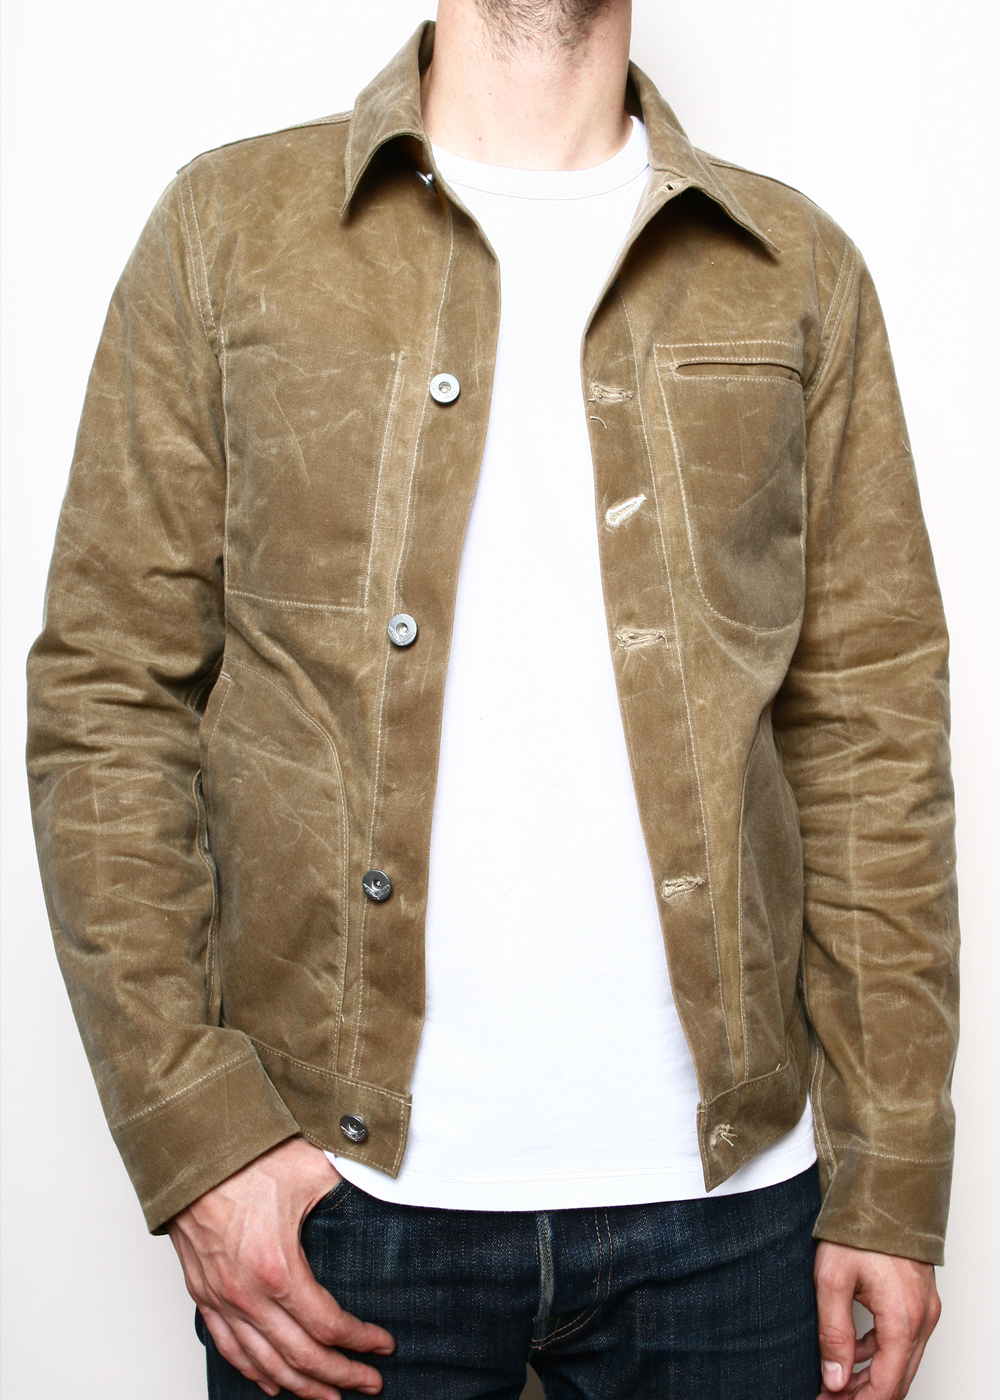 Waxed Canvas Shirt | Orvis Field Jacket | Waxed Trucker Jacket